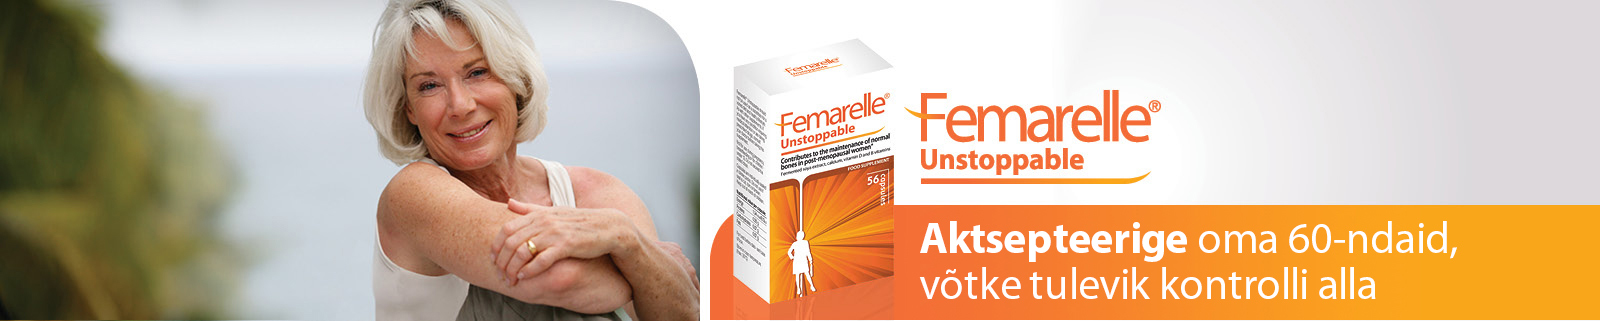 femarelle-unstoppable-ee